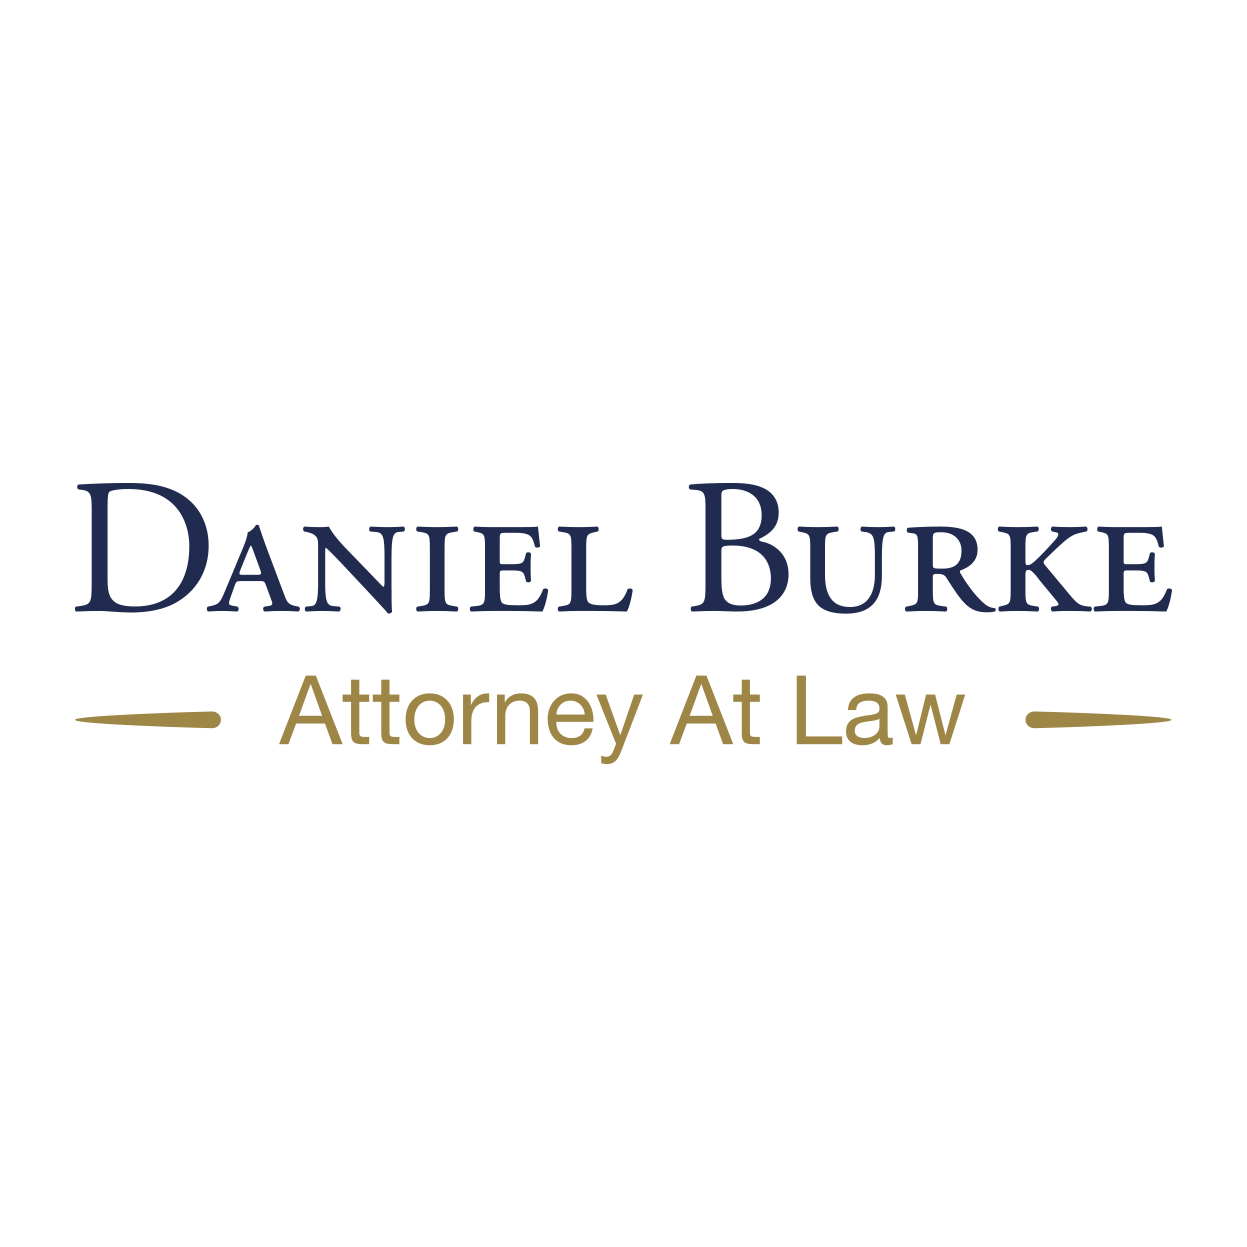 Dan Burke Attorney at Law image 1